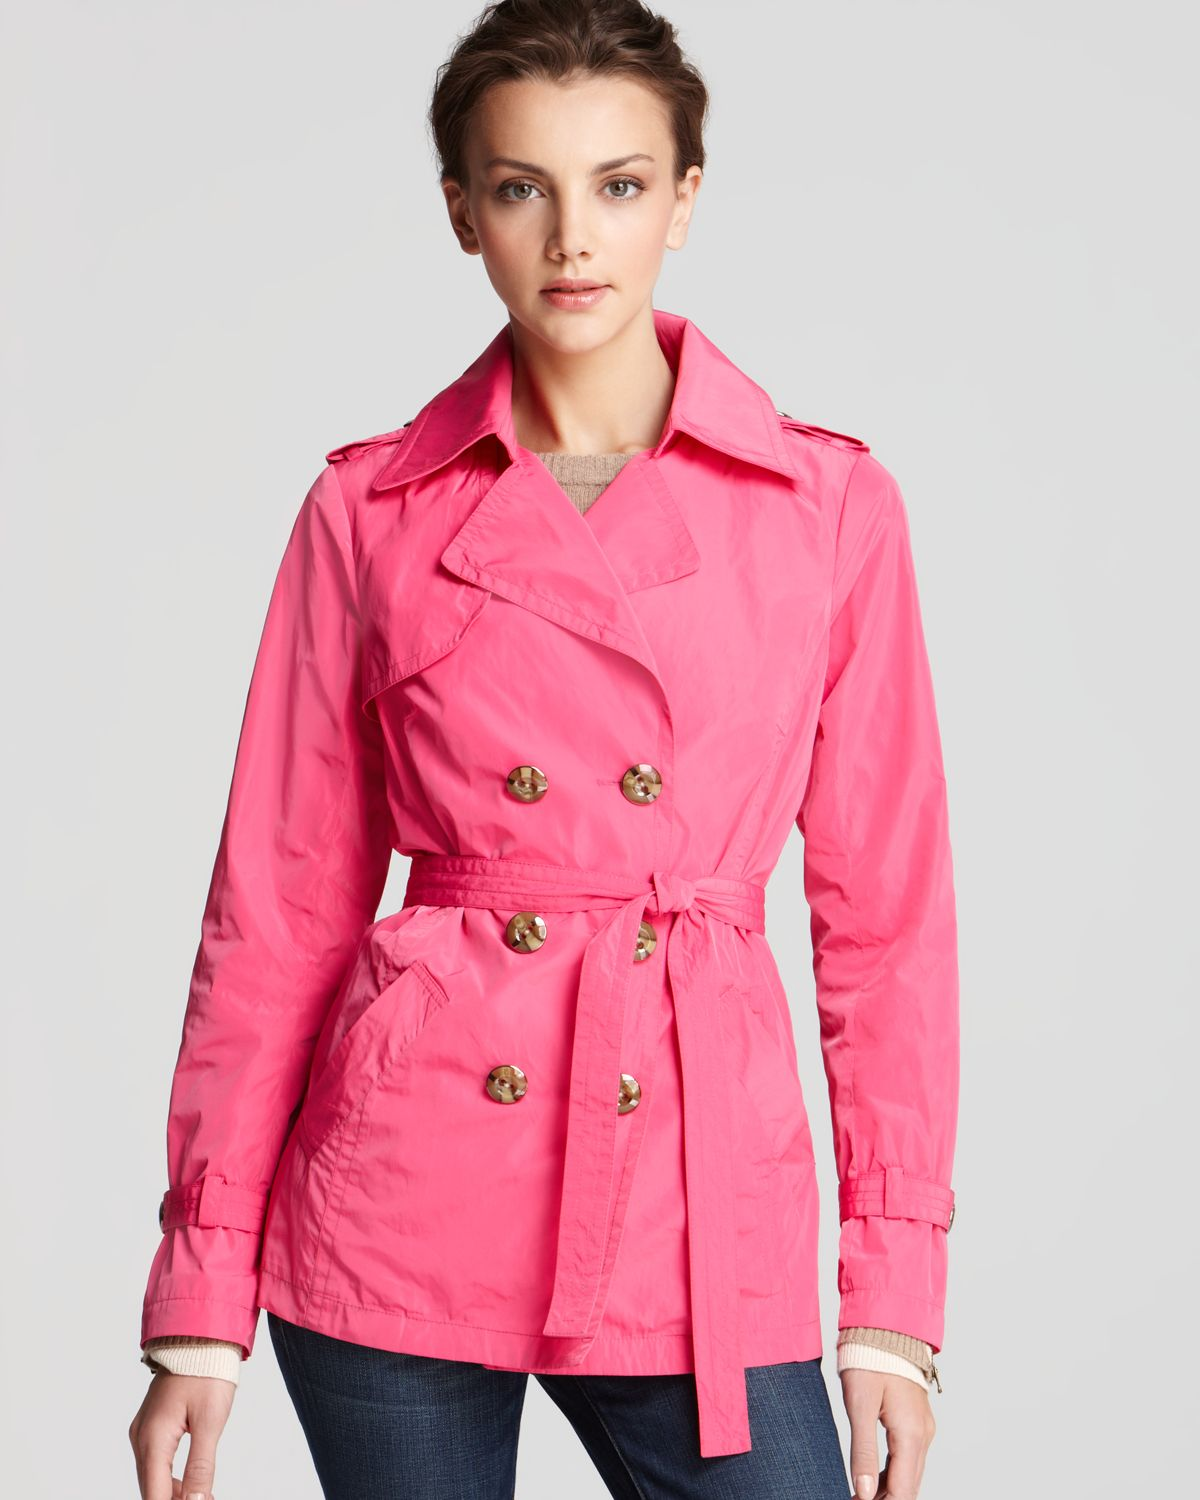 Trina turk Homage Classic Short Trench Coat in Pink | Lyst